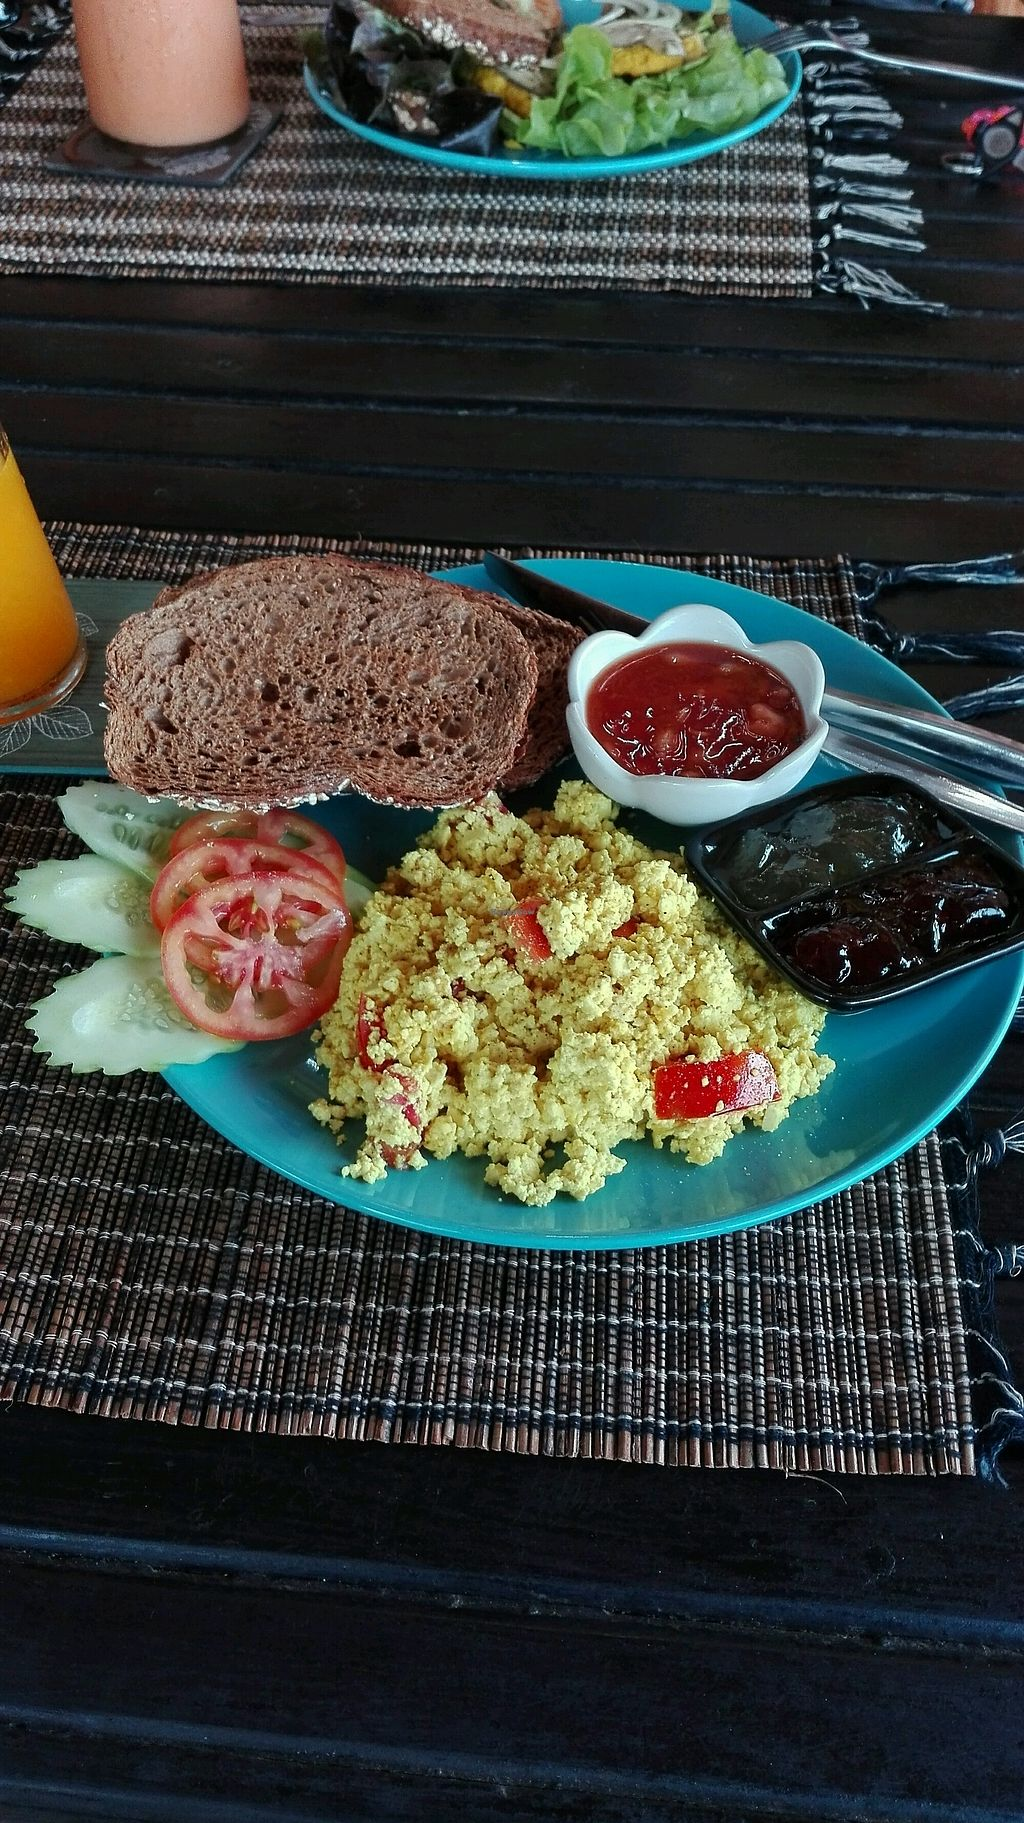 """Photo of Happy Veggie  by <a href=""""/members/profile/Escarabajo"""">Escarabajo</a> <br/>breakfast with vegan egg <br/> January 29, 2018  - <a href='/contact/abuse/image/83999/352242'>Report</a>"""